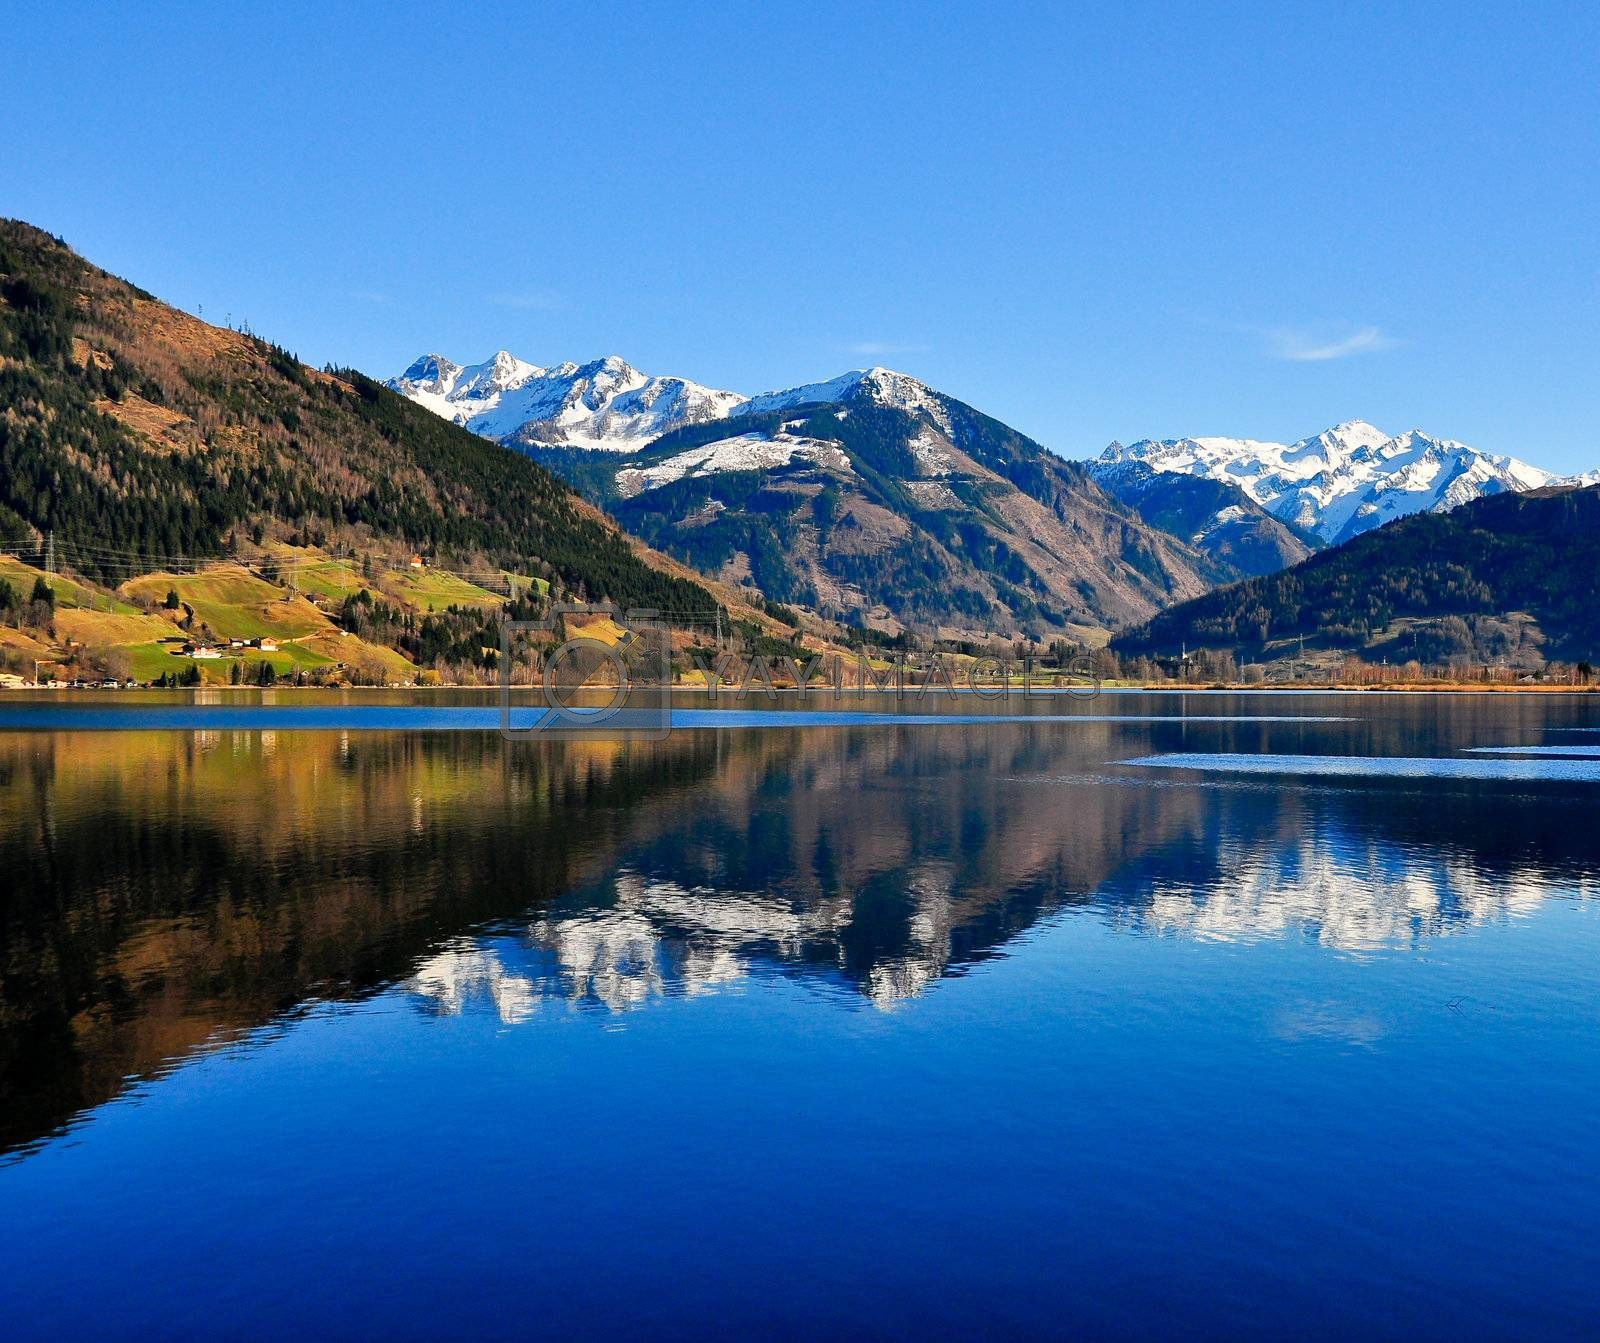 Blue mountain lake landscape view with mountain reflection, Zell am See, Austria